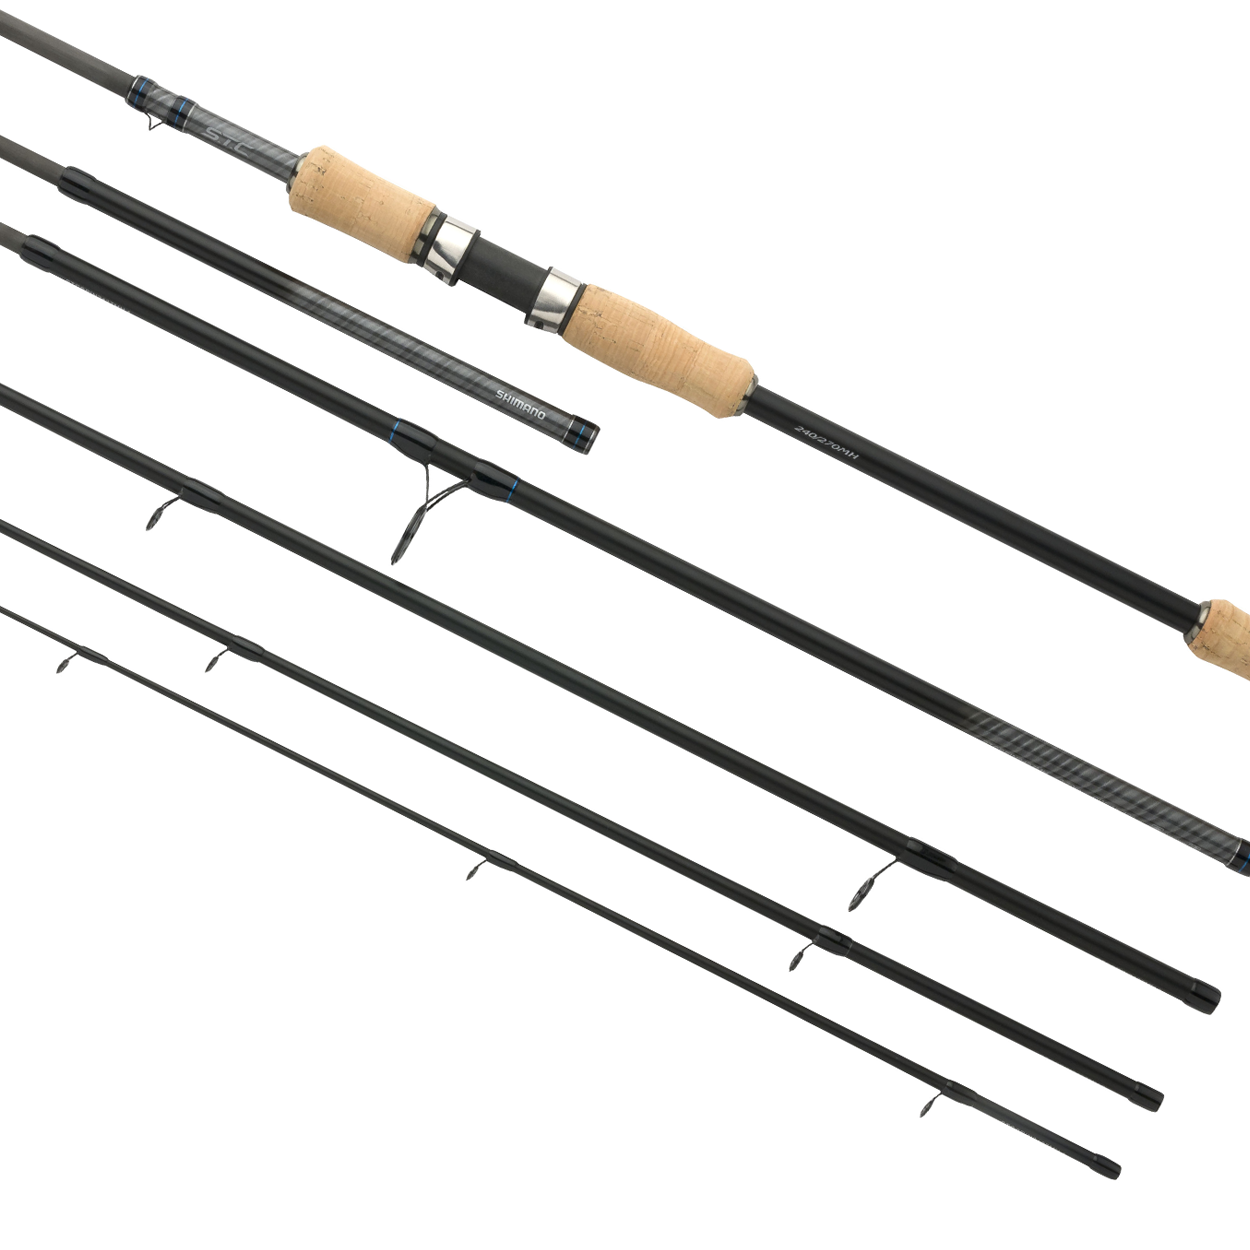 Shimano STC Multi Spin Rods All Models NEW Protator Fishing Rods